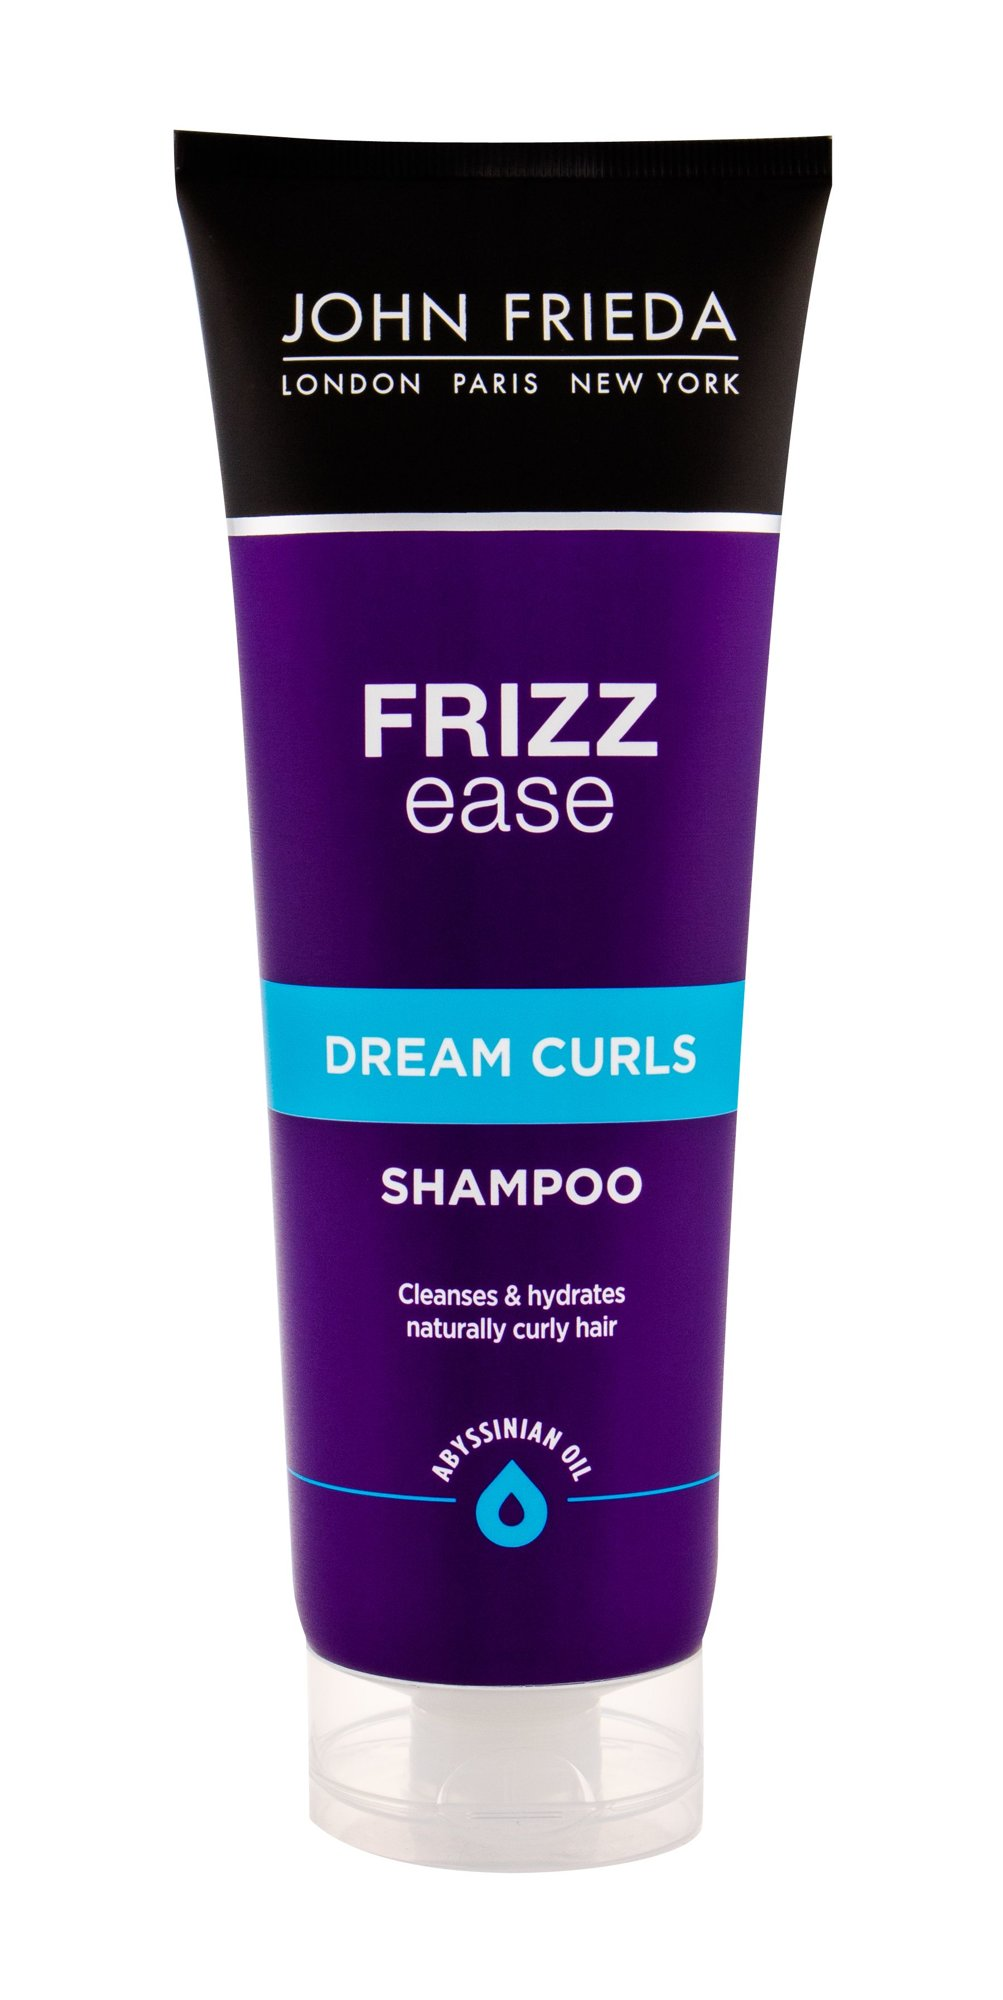 John Frieda Frizz Ease Shampoo 250ml  Dream Curls